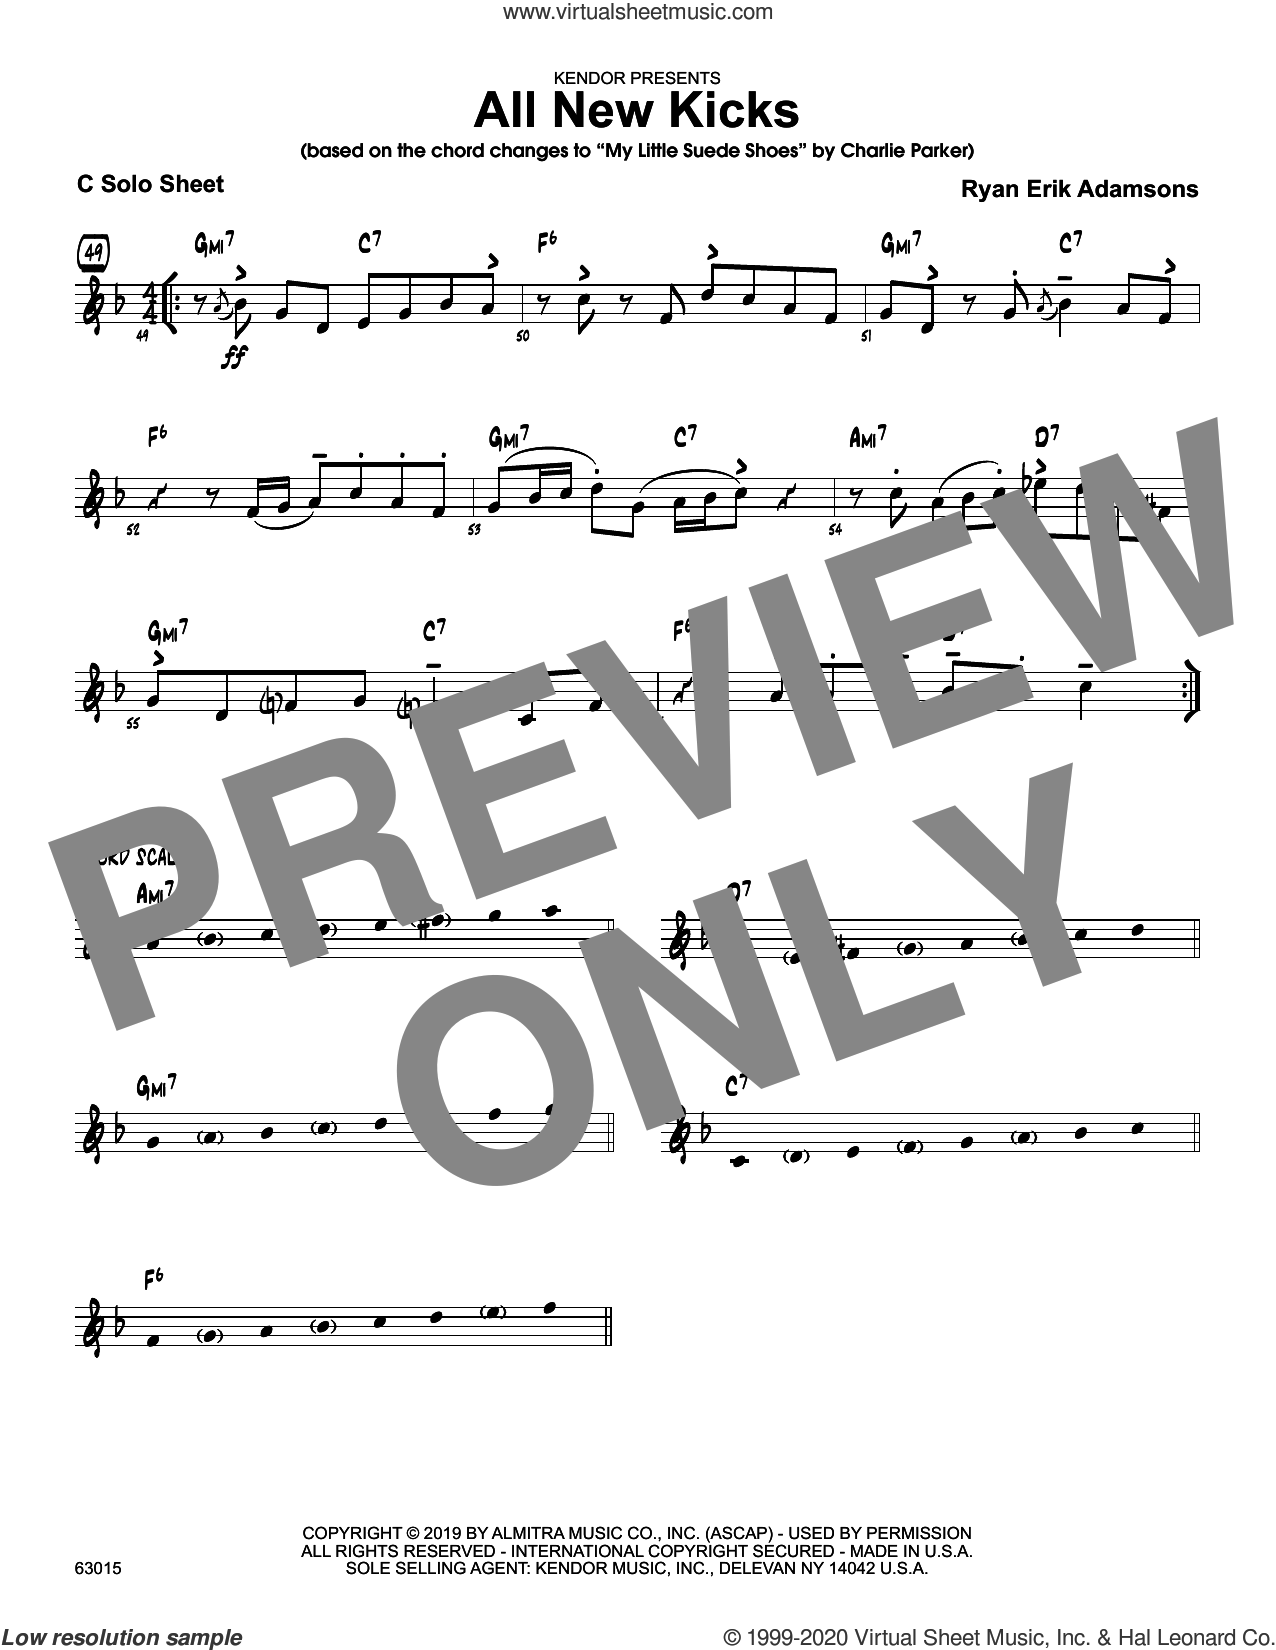 All New Kicks, solo sheet sheet music for jazz band (solo sheet - alto sax) by Ryan Erik Adamsons, intermediate skill level